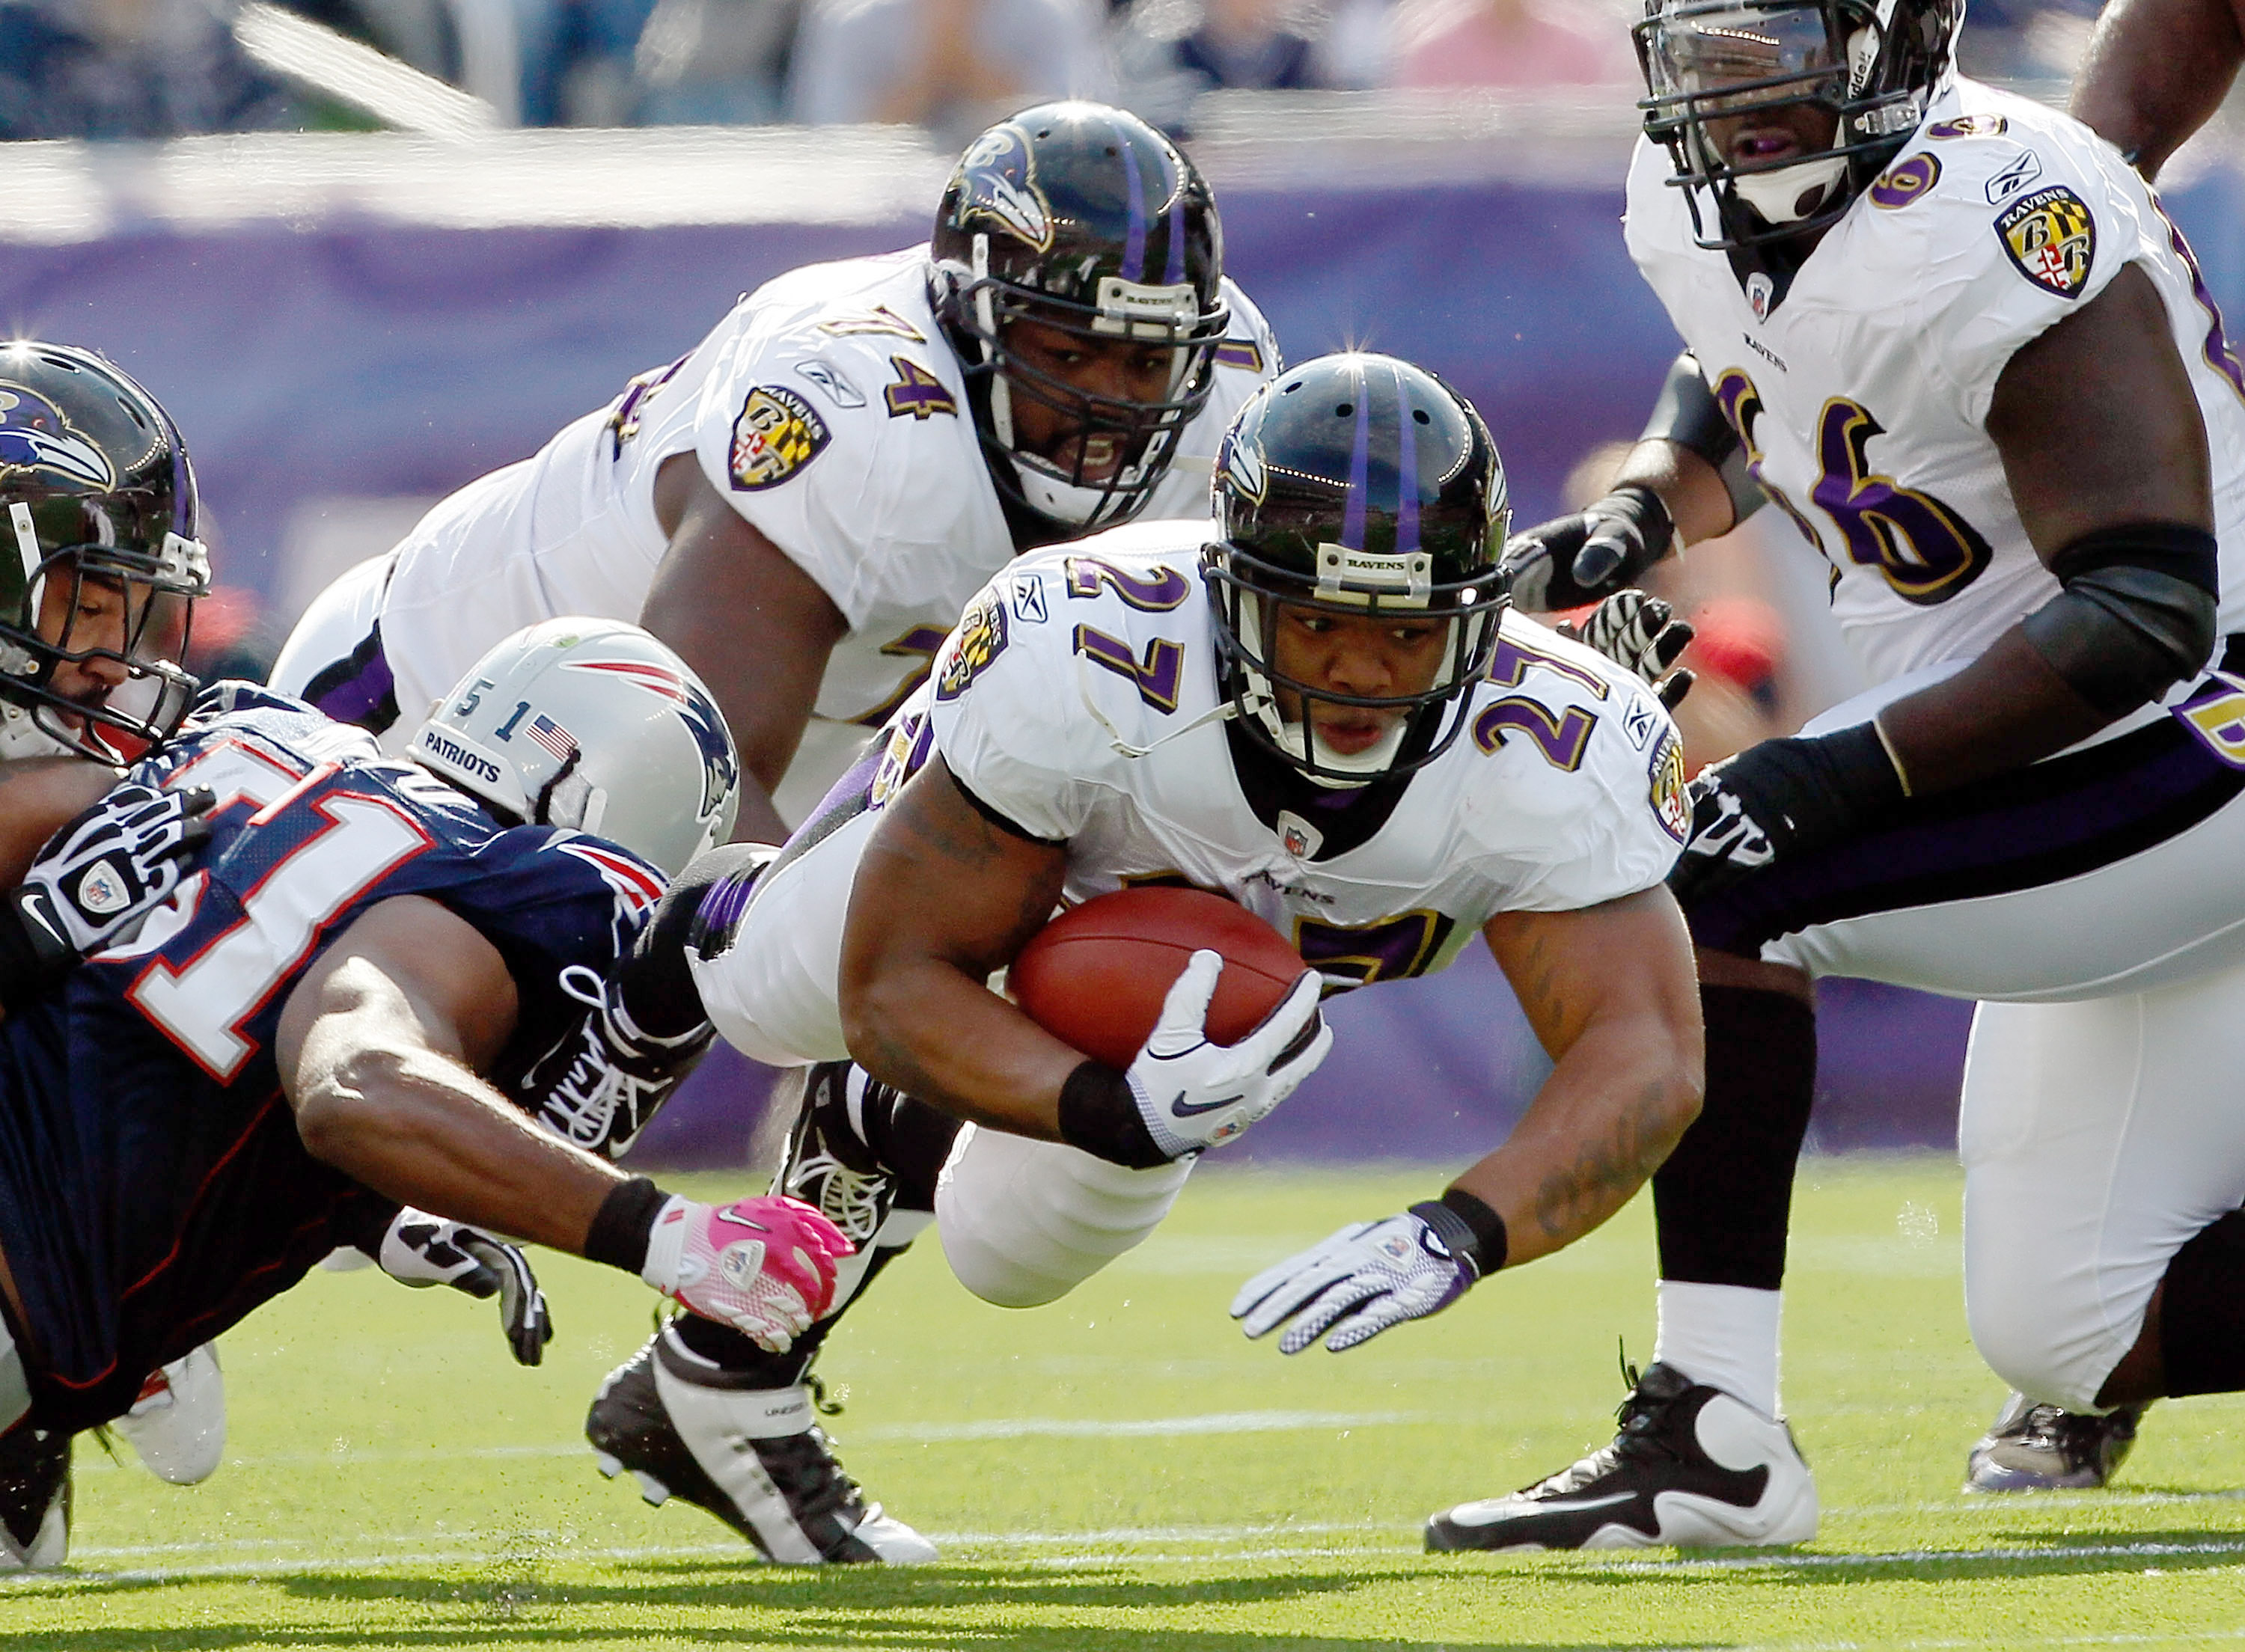 FOXBORO, MA - OCTOBER 17:  Ray Rice #27 of the Baltimore Ravens gains yards against the New England Patriots in the first half at Gillette Stadium on October 17, 2010 in Foxboro, Massachusetts. (Photo by Jim Rogash/Getty Images)